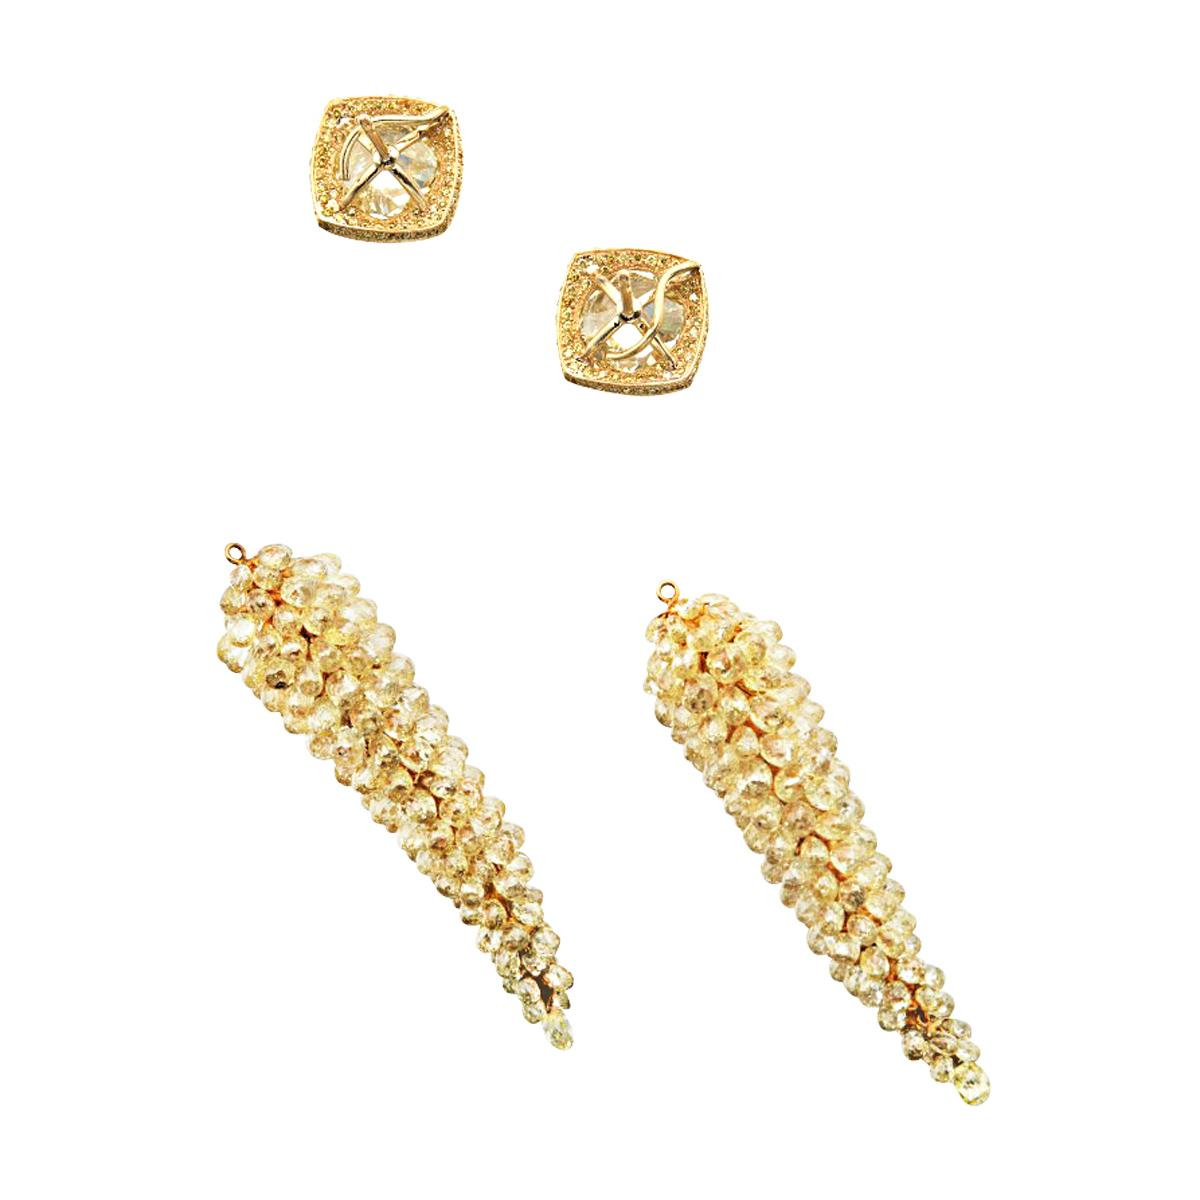 jb-star-or-pair-of-fancy-yellow-fancy-light-yellow-and-colored-diamond-grape-pendant-earrings-c4f1